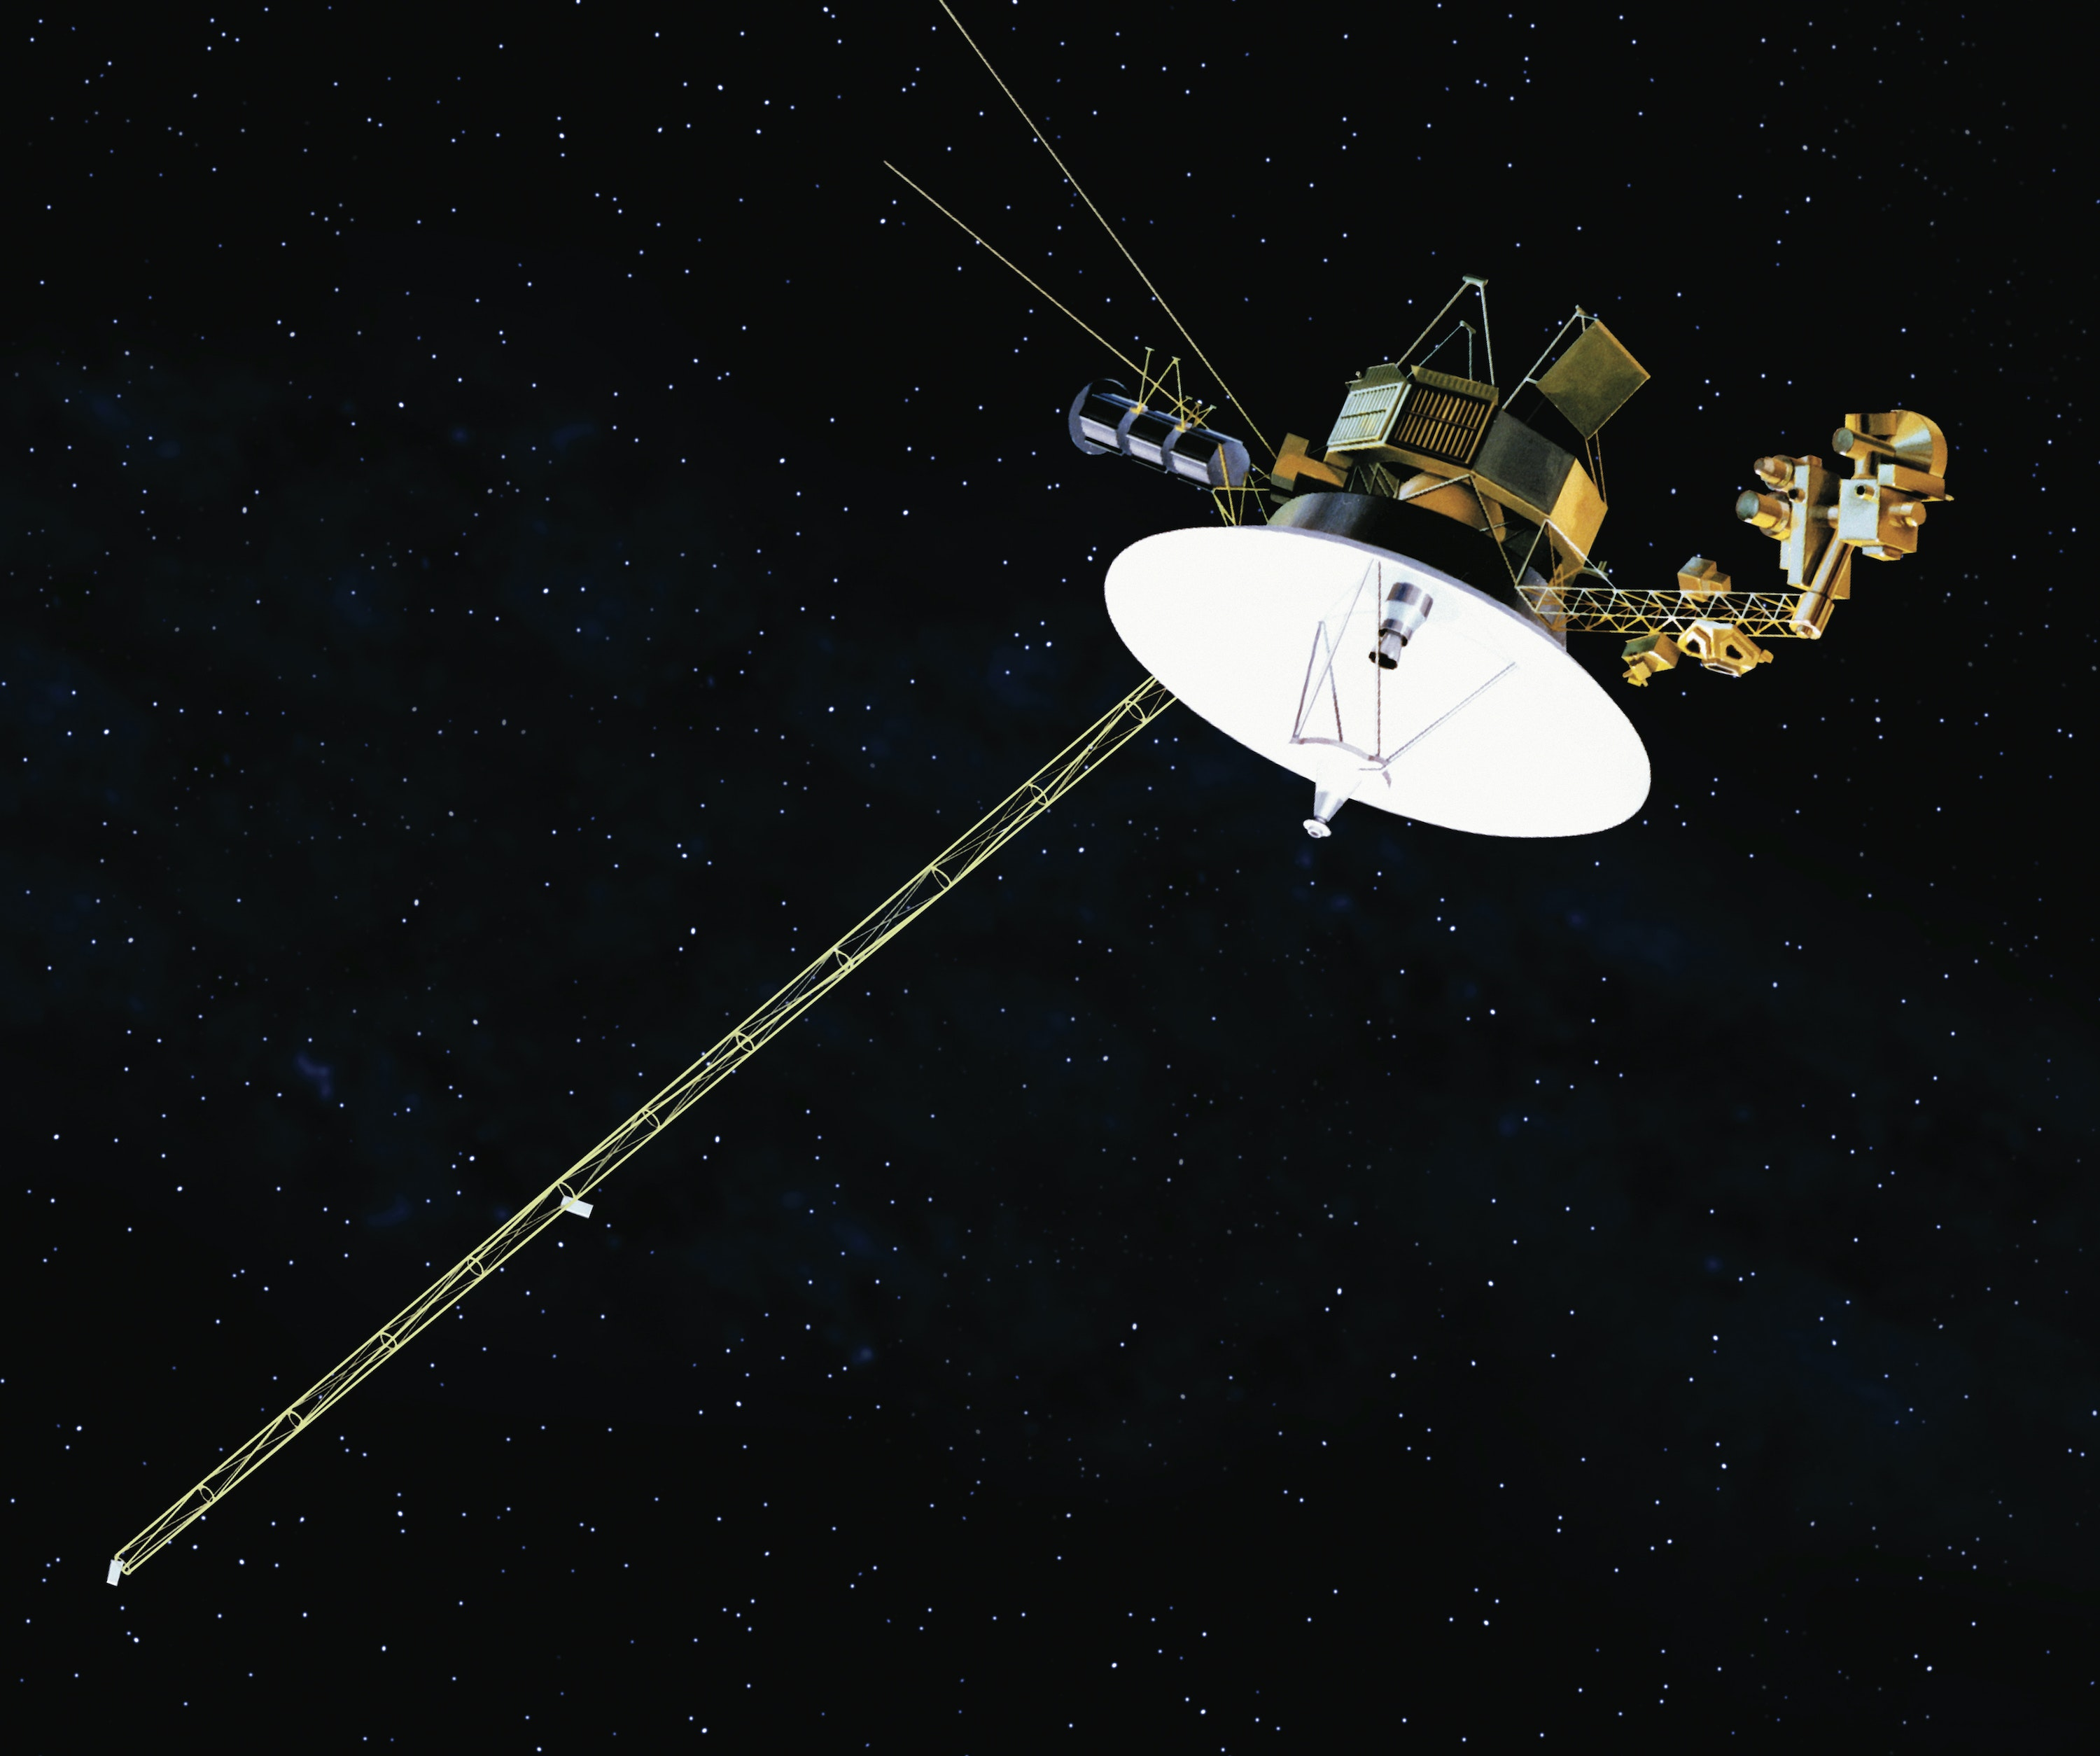 space probe voyager - HD3000×2508